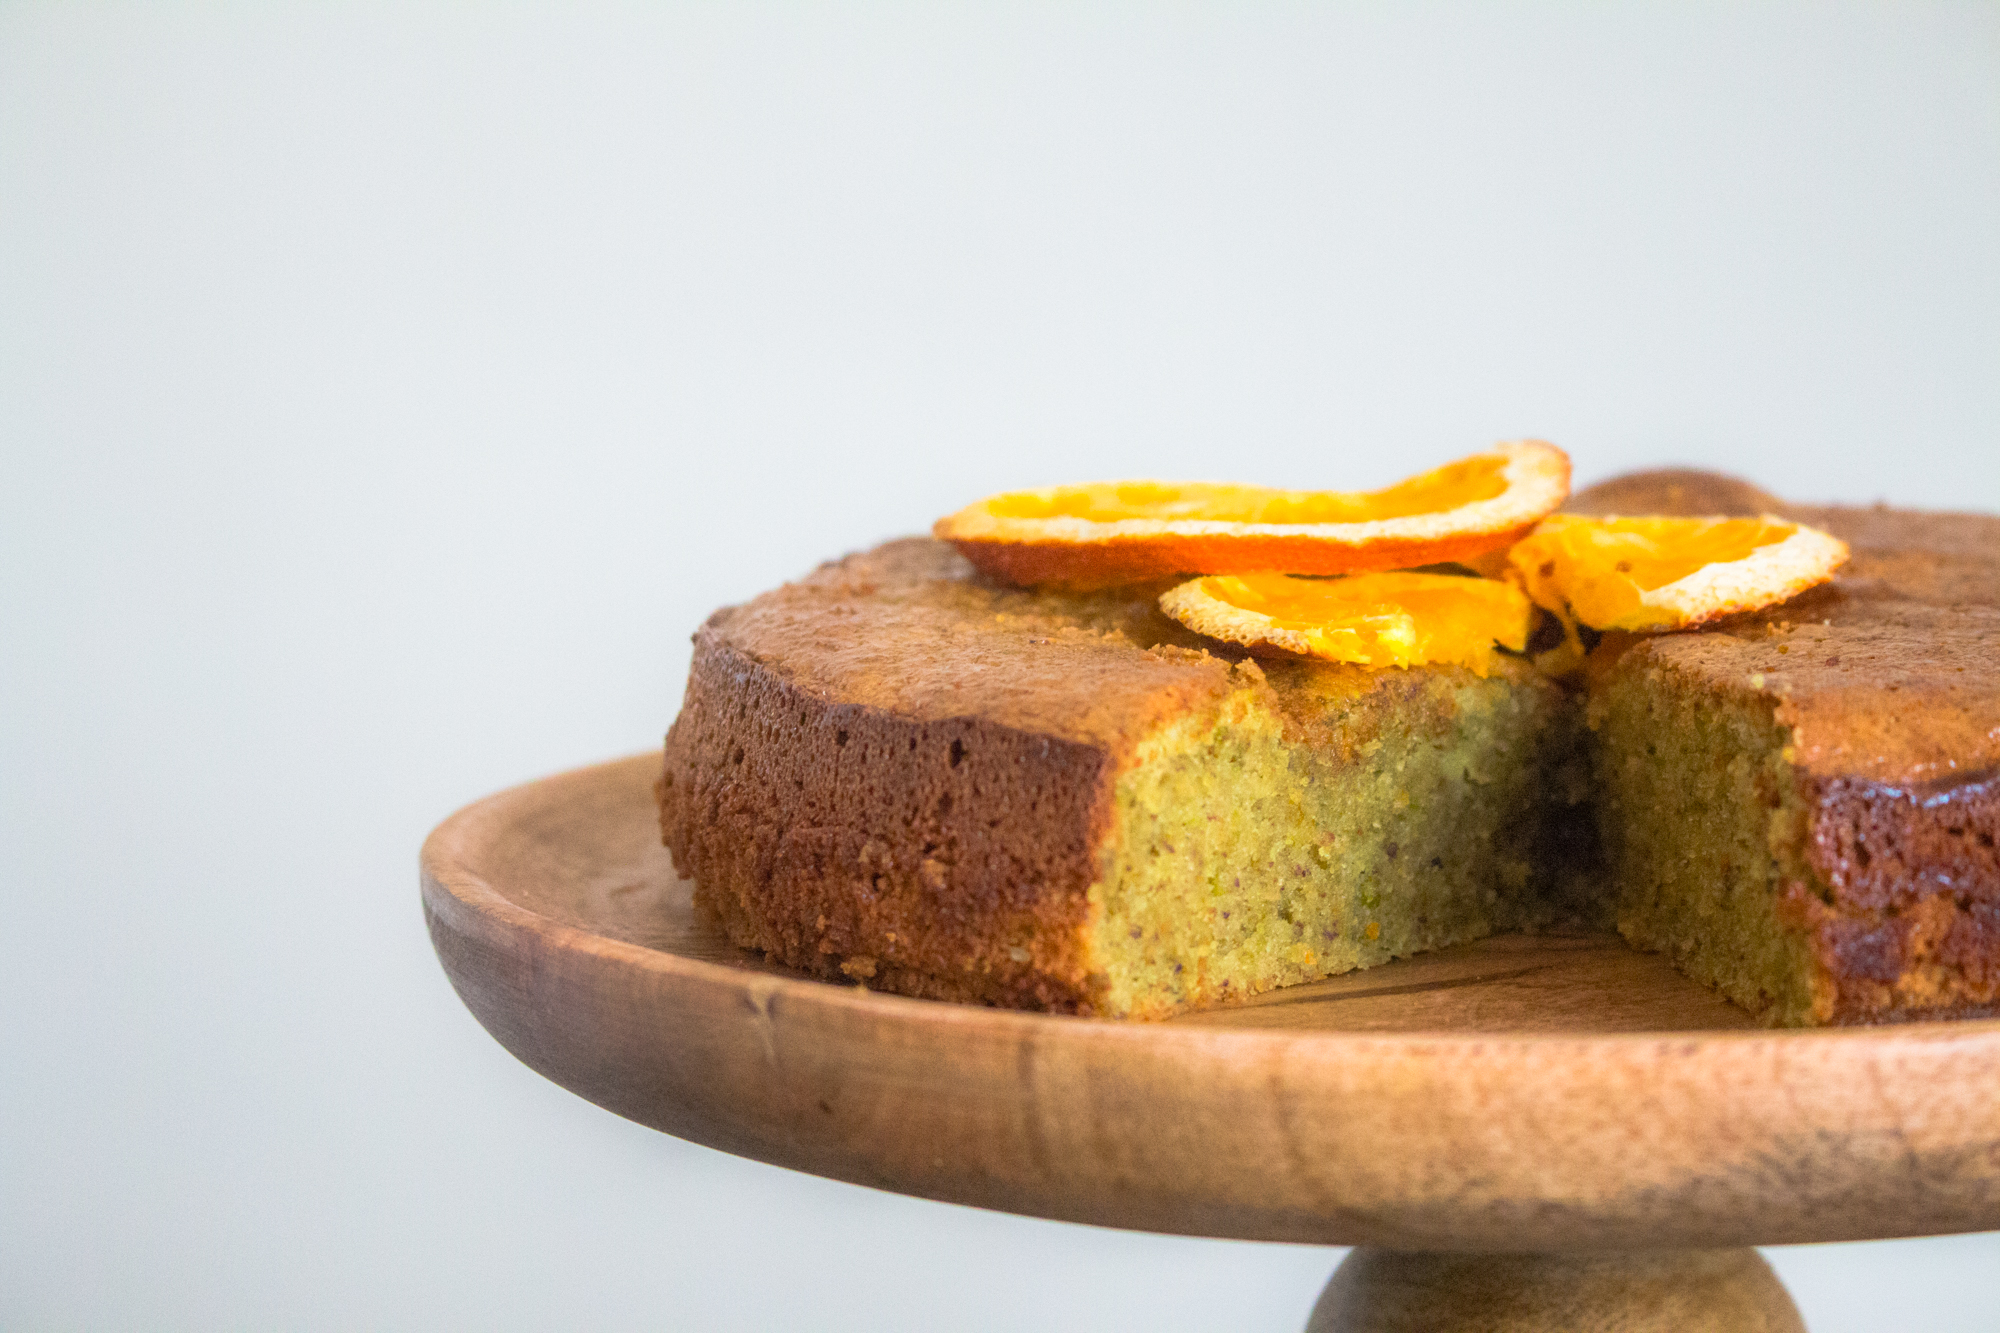 Pistachio and orange cake - gluten and dairy free